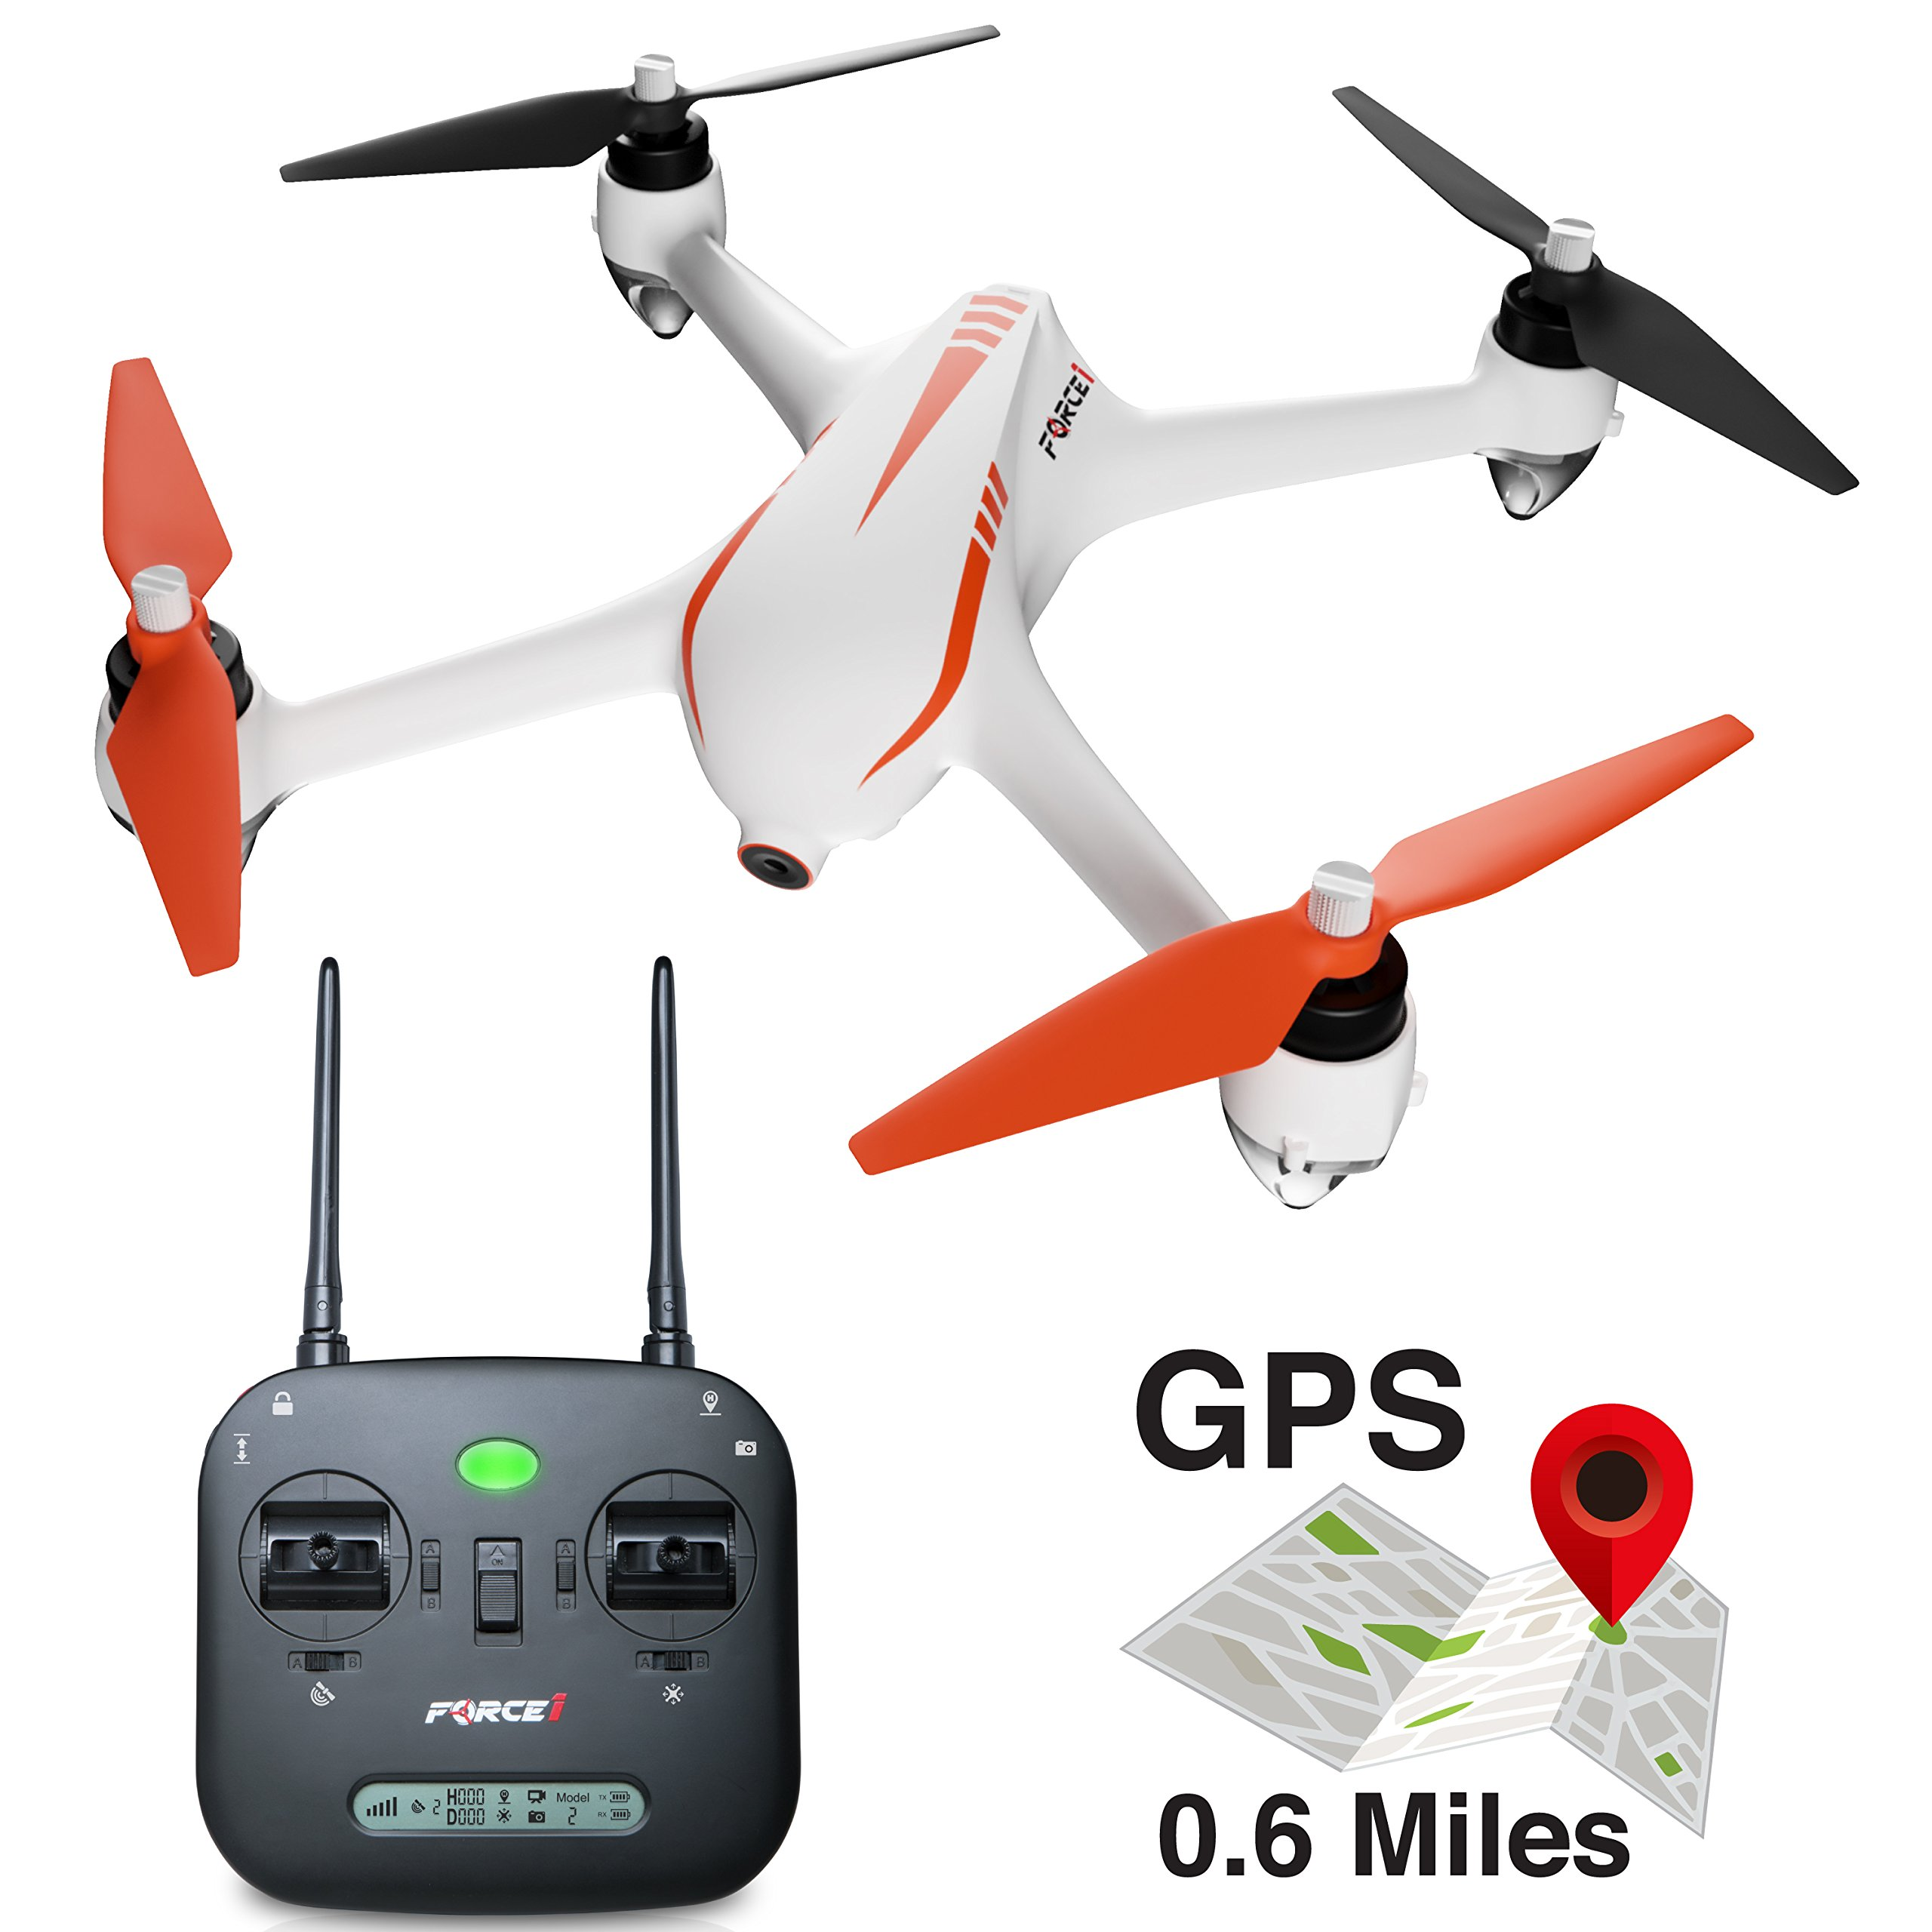 Drones with Camera and GPS – B2C Specter MJX Bugs 2 1080P Drone with Camera for Adults Kids Drone with Auto Return and Extra Long Range Drone Battery